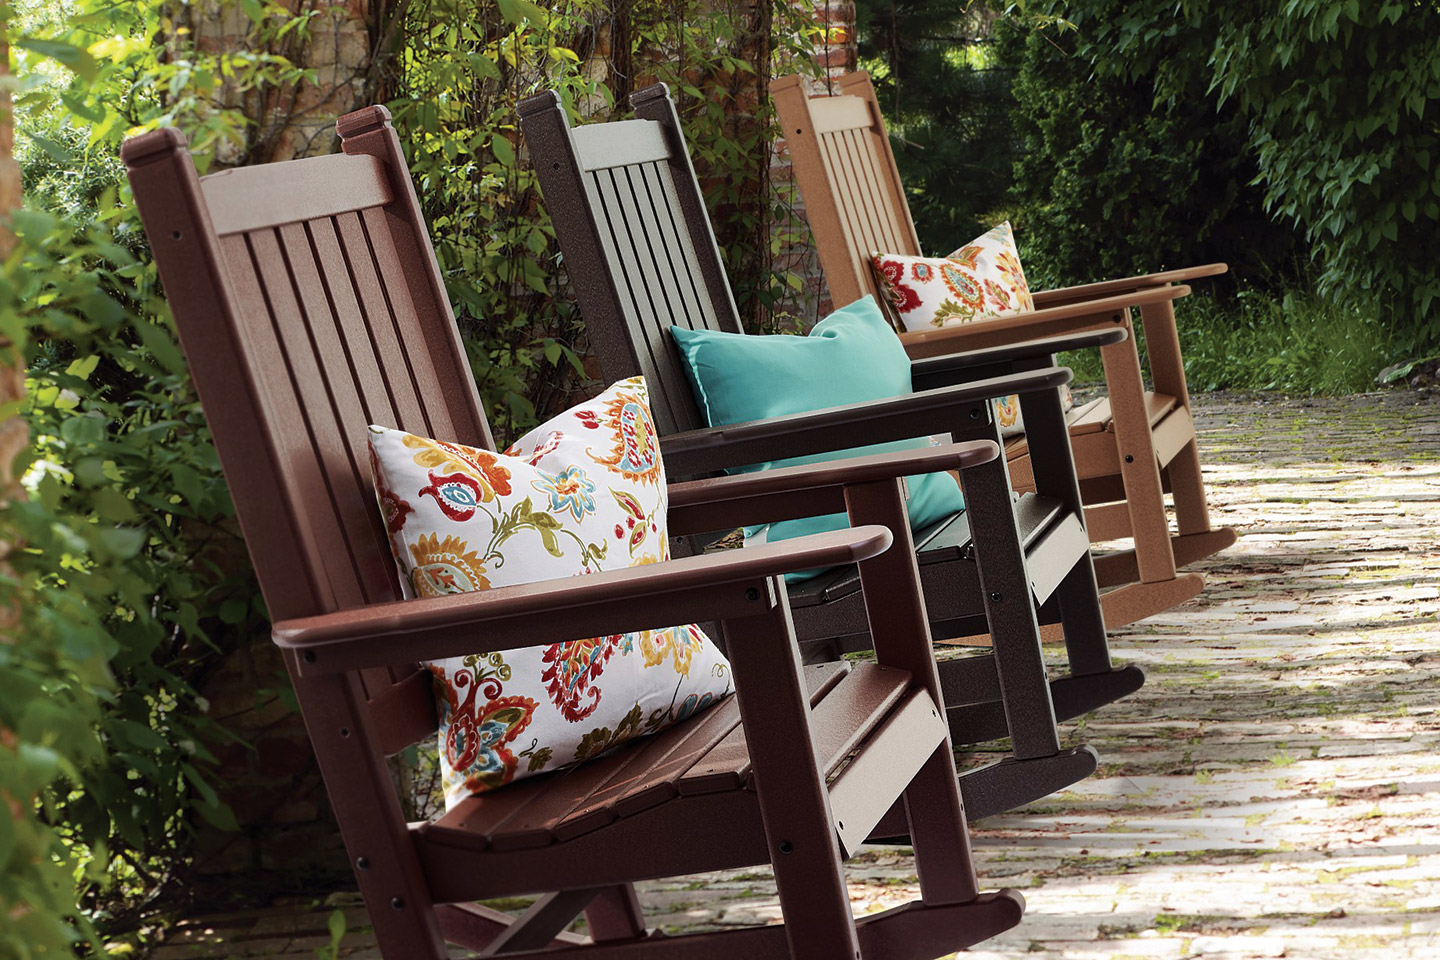 Senior living outdoor space with rocking chairs